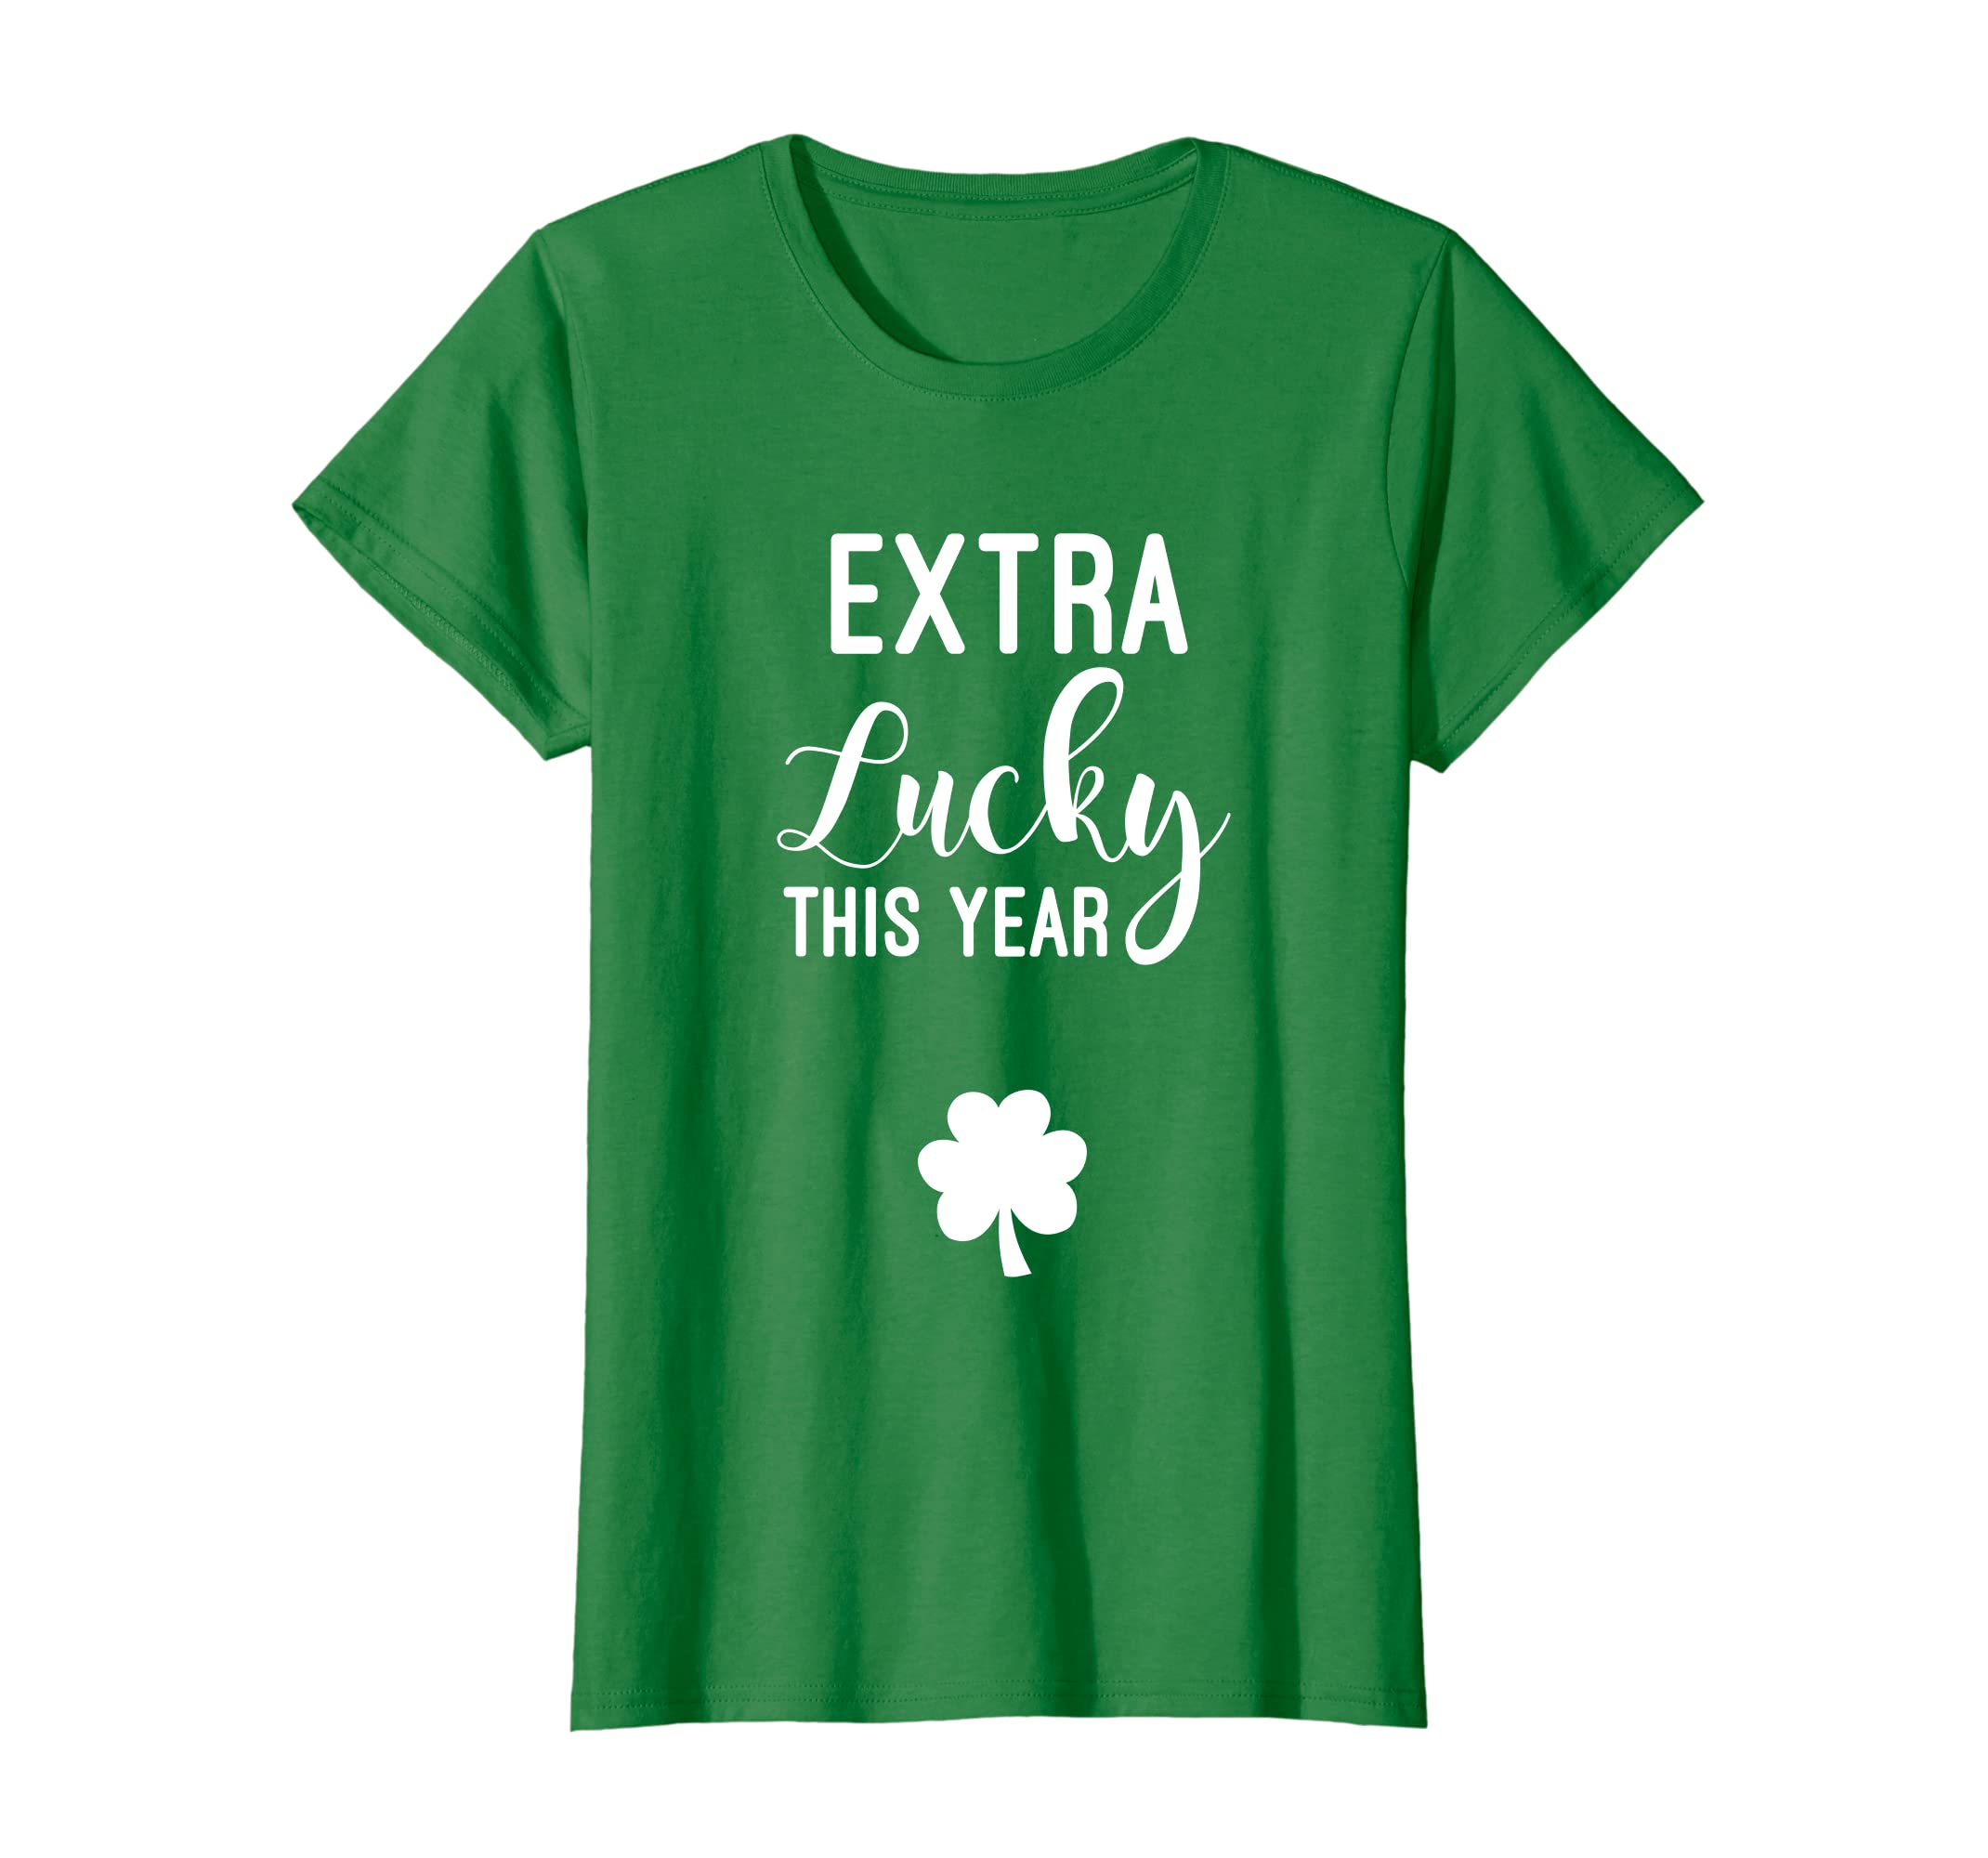 e78c67c4 Amazon.com: Womens Extra Lucky This Year T-shirt Pregnant St Patricks Day  tee: Clothing